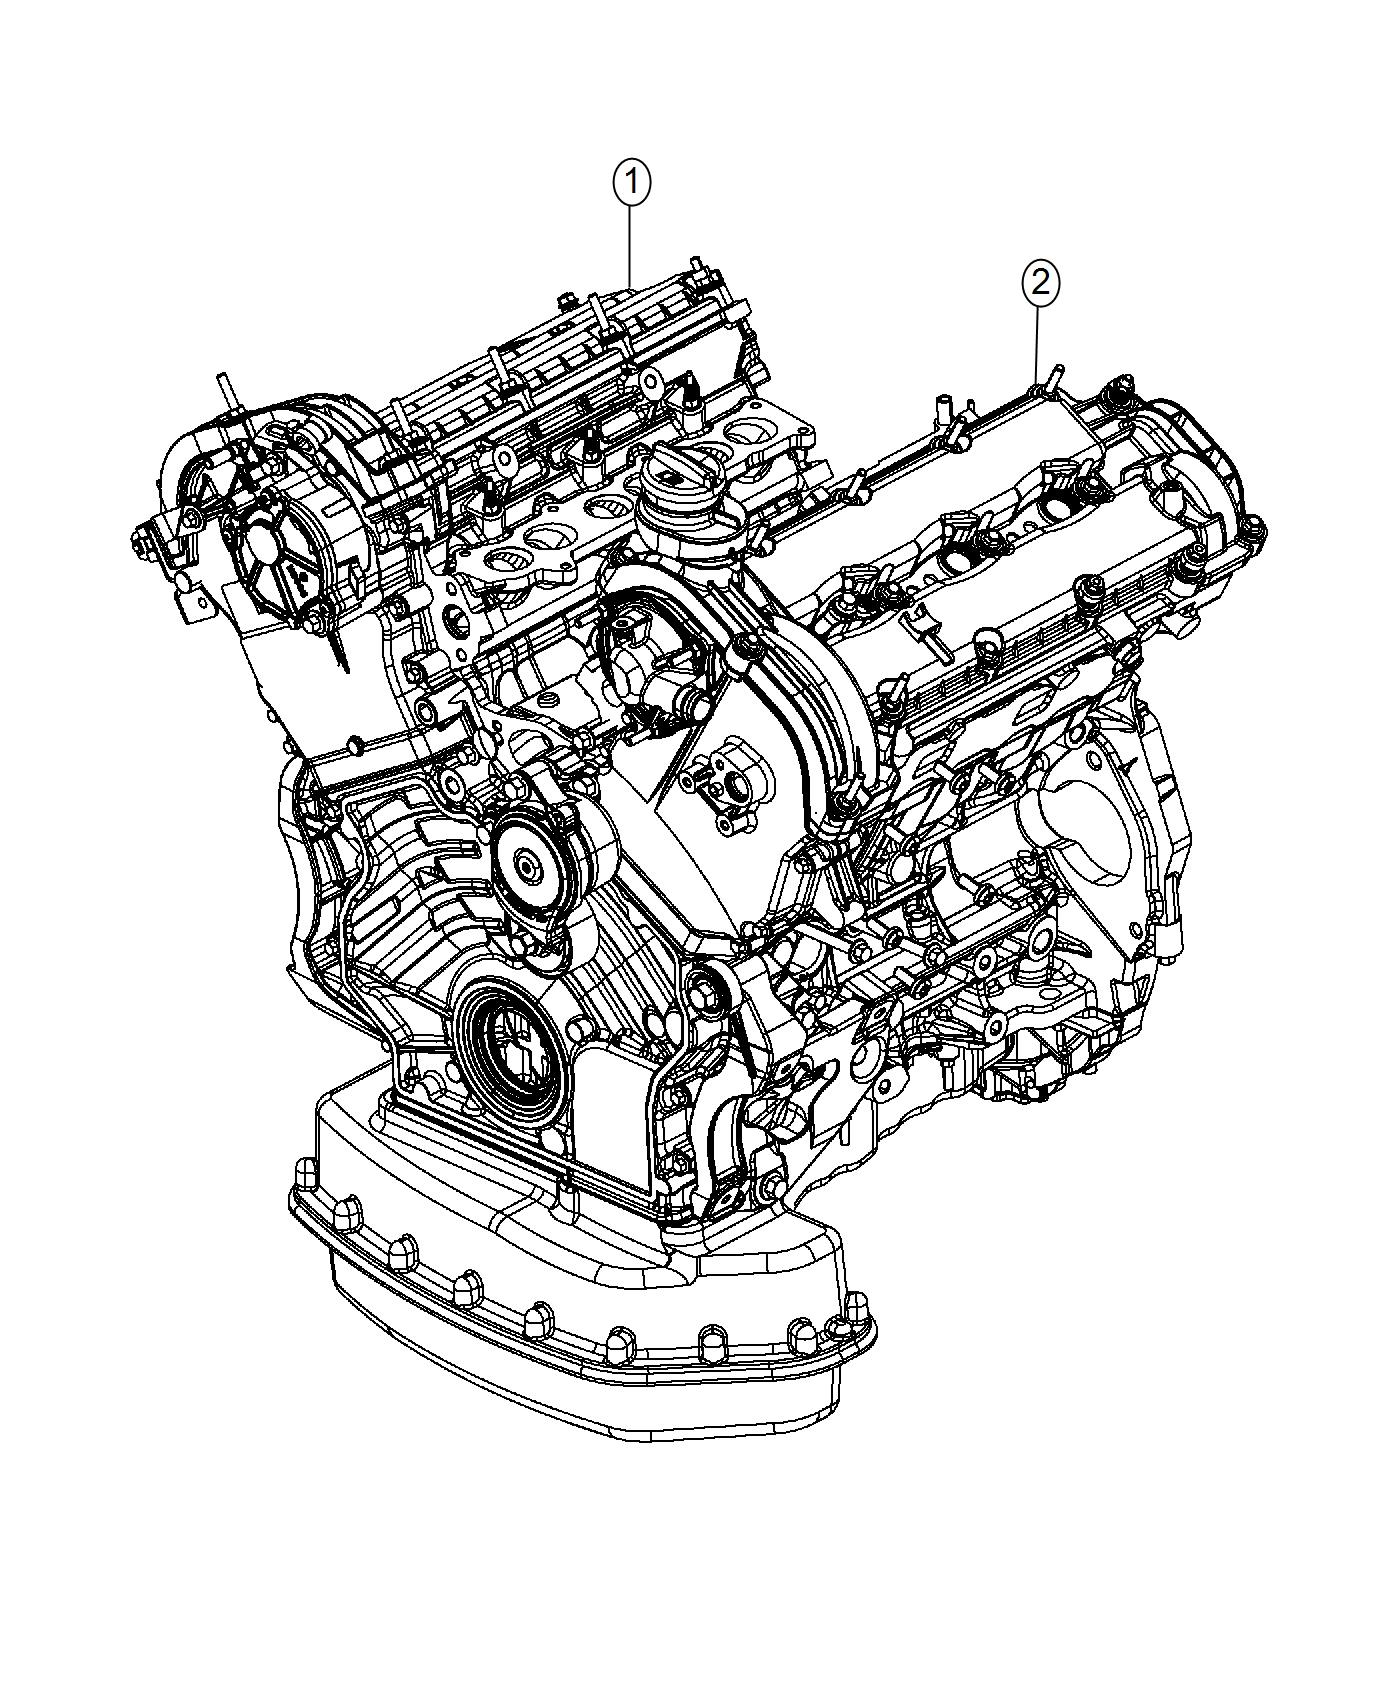 2017 Jeep Grand Cherokee Engine. Long block. Emission